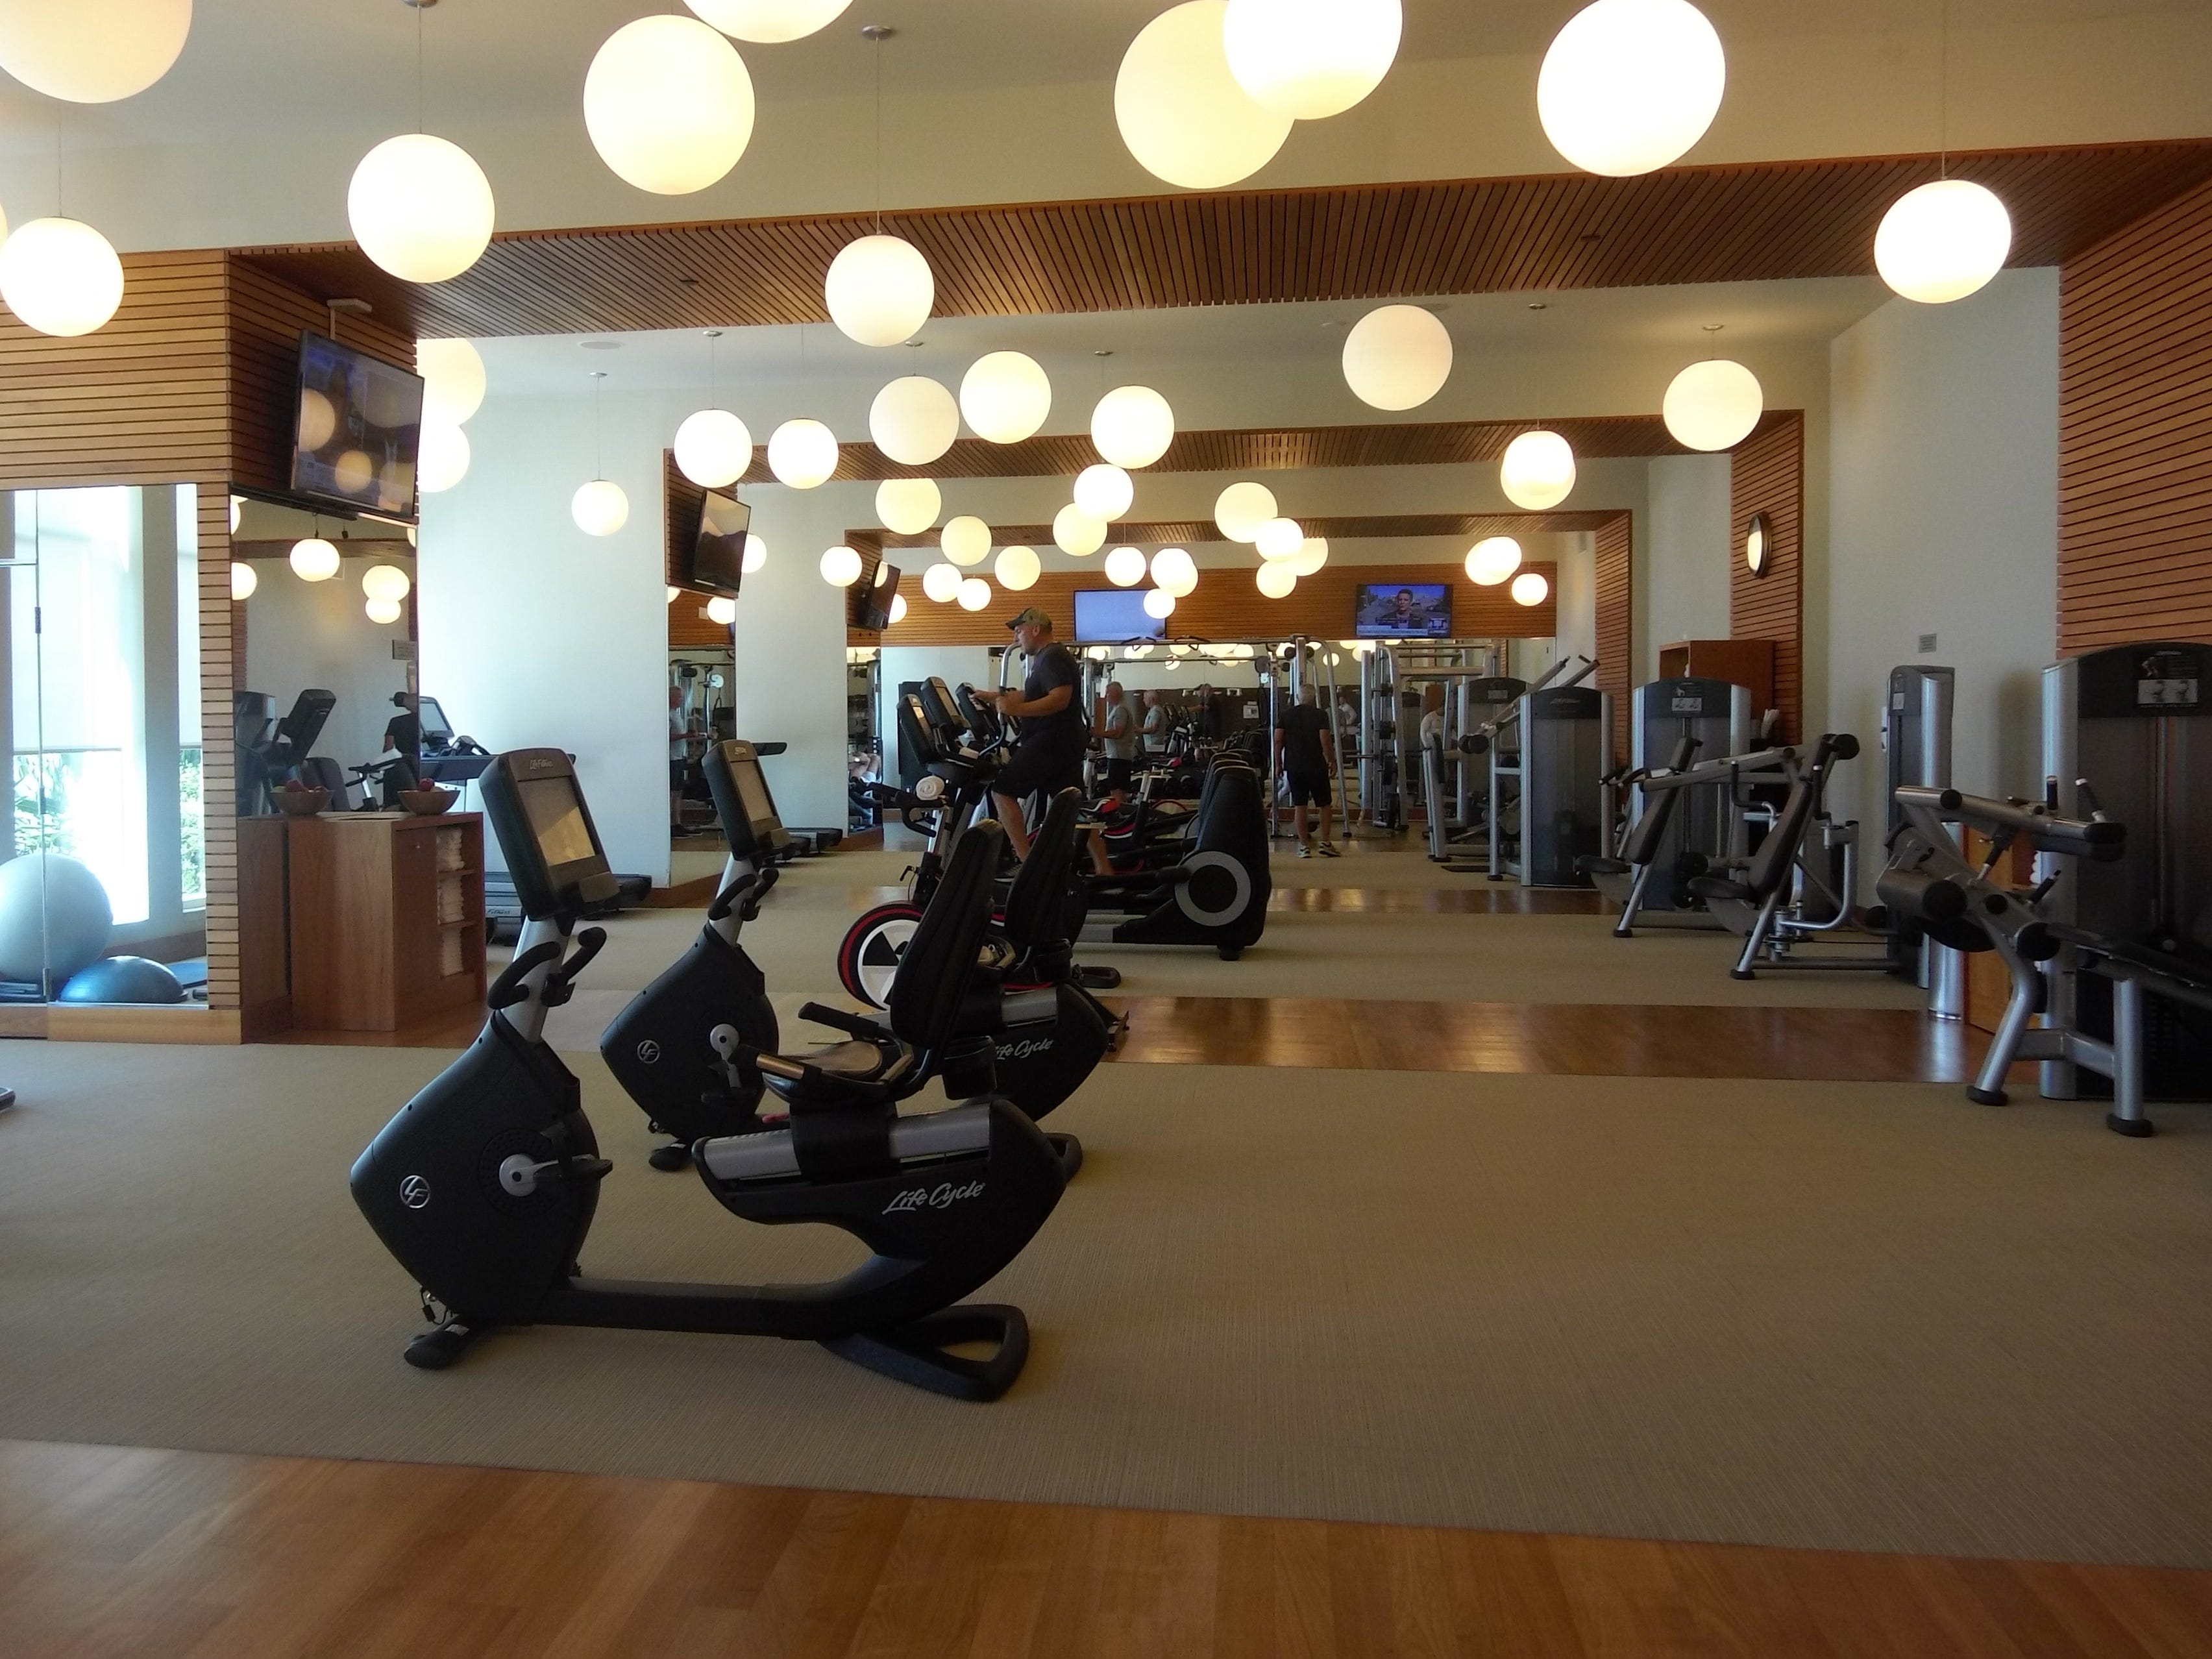 The state-of-the-art fitness center at Boca Beach Club.